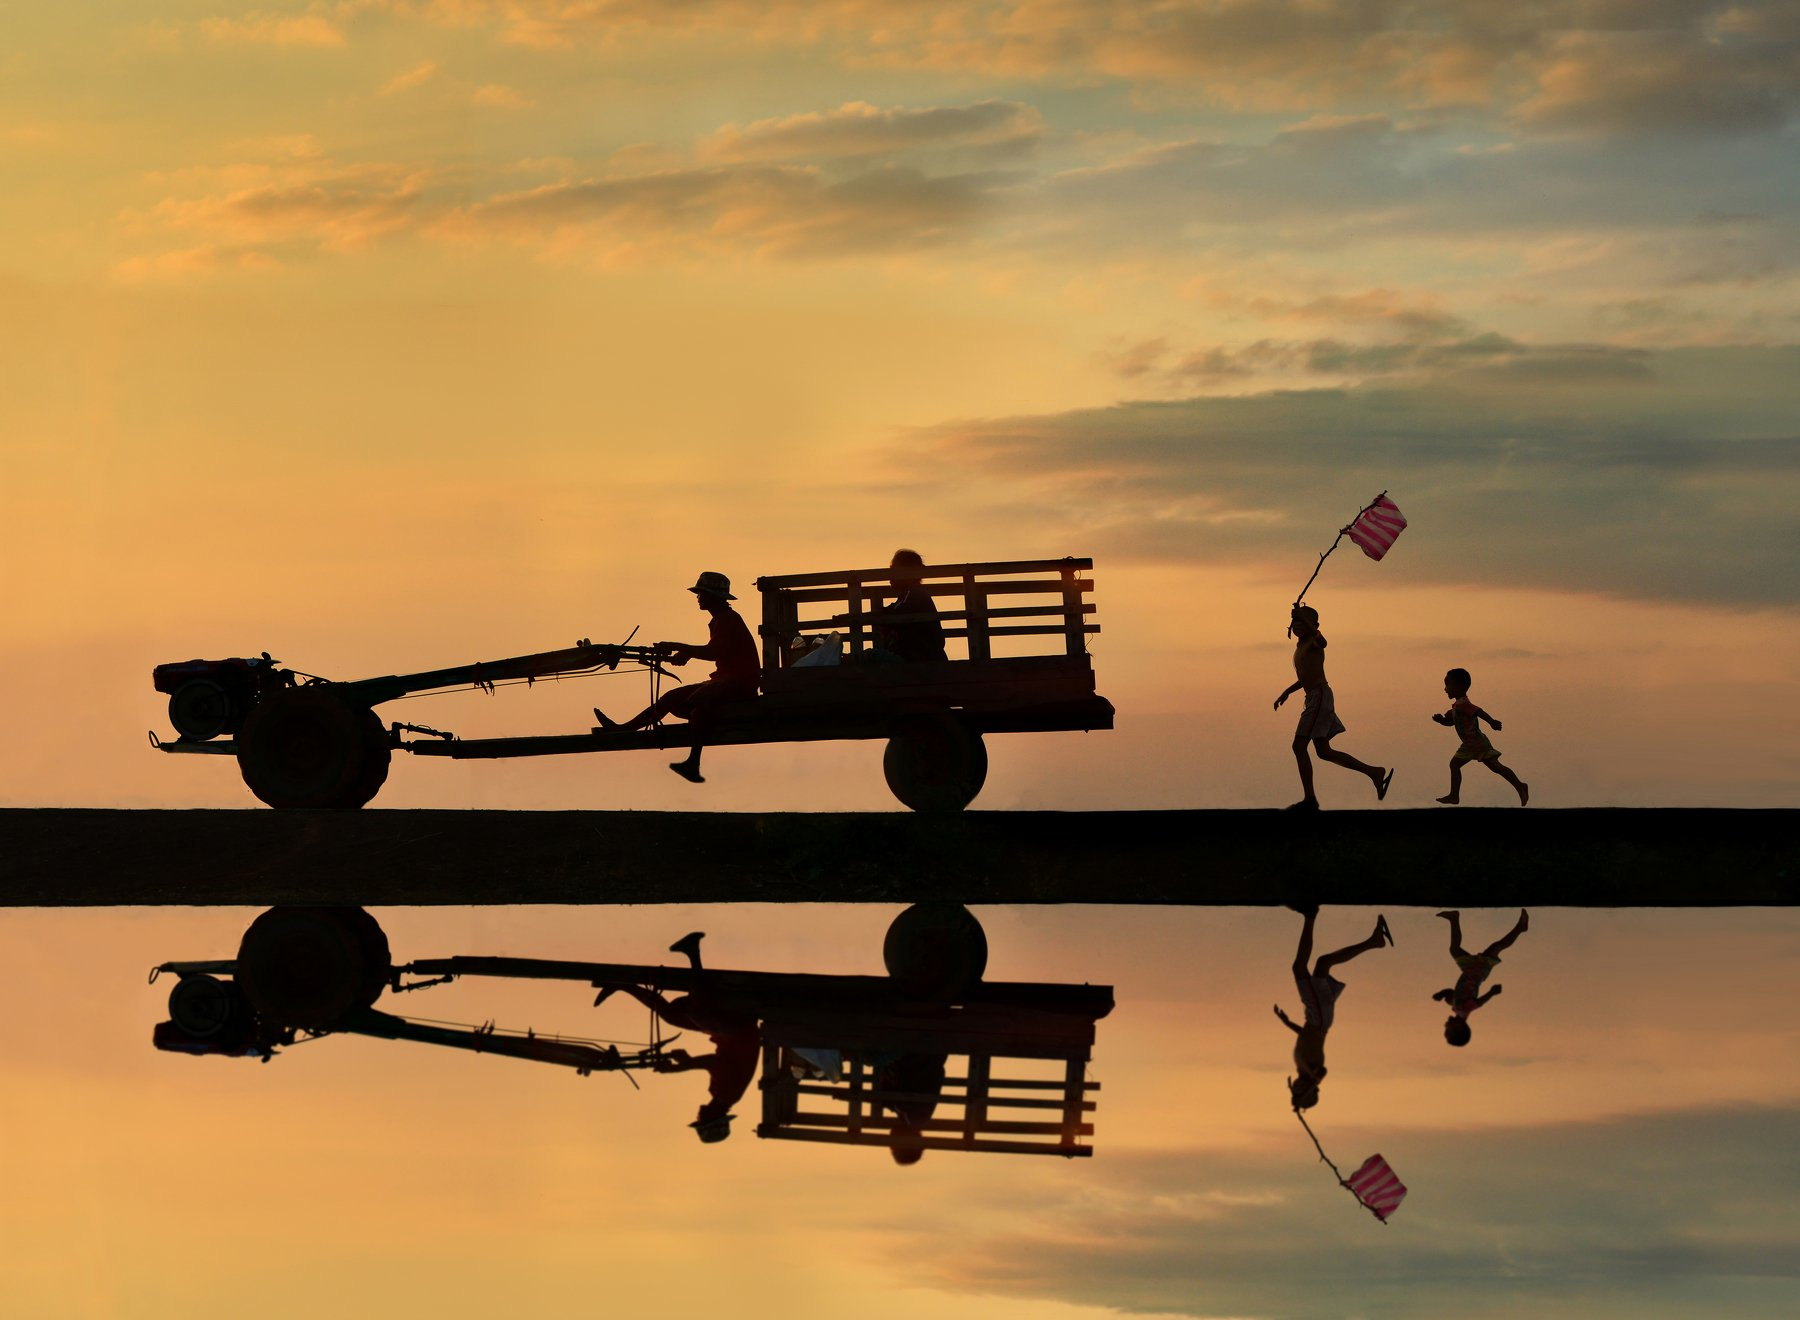 Cycling, Bicycle, Scenics, Sunset, Lake, Reflection, People, Two People, Nature, Silhouette, Thailand, Atmospheric Mood, Beauty In Nature, Cloud - Sky, Color Image, Horizontal, On The Move, Outdoors, Photography, Sky, Sunlight, Togetherness, Transportatio, sarawut intarob